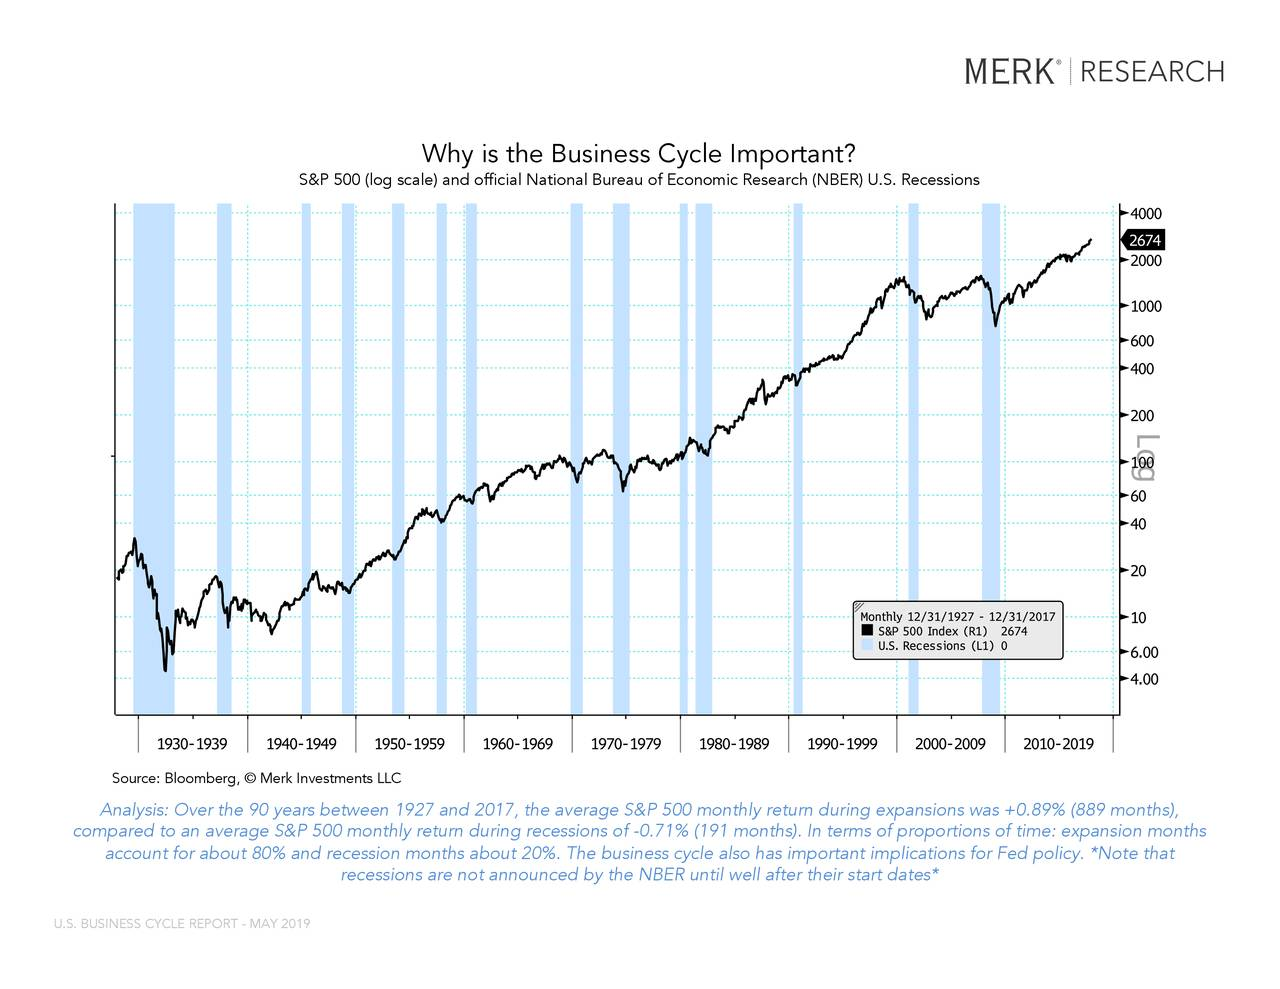 """SPX Index (S&P 500 Index) SRINDEX Index (U.S. Recession Indicator... Why is the Business Cycle Important? S&P 500 (log scale) and official National Bureau of Economic Research (NBER) U.S. Recessions This rSource: Bloomberg,© Merk Investments LLCany way. The BLOOMBERG PROFESSIONAL service and BLOOMBERG Data are owned and distributed locally by Bloomberg Finance LP (""""BFLP"""") and its subsidiaries in all jurisdictions other than Argentina, Bermuda, China, India, Japan and Korea (the (""""BFLP Countries""""). BFLP is a wholly-owned subsidiary of Bloomberg LP (""""BLP""""). BLP provides BFLP with all the global marketing and operational support and service for the Services and distributes the Services either directly or through a non-BFLP subsidiary in the BLP Countries. BFLP, BLP and their affiliates do not provide investment advice, and nothing herein shall constitute an offer of financial instruments by BFLP, BLP or their affiliates. Analysis: Over the 90 years between 1927 and 2017, the average S&P 500 monthly return during expansions was +0.89% (889 months), coBloomberg ® 02/01/2019 18:54:18turn during recessions of -0.71% (191 months). In terms of proportions of time: expansi on months 1 account for about 80% and recession months about 20%. The business cycle also has important implications for Fed policy. *Not e that recessions are not announced by the NBER until well after their start dates* U.S. BUSINESS CYCLE REPORT - MAY 2019"""